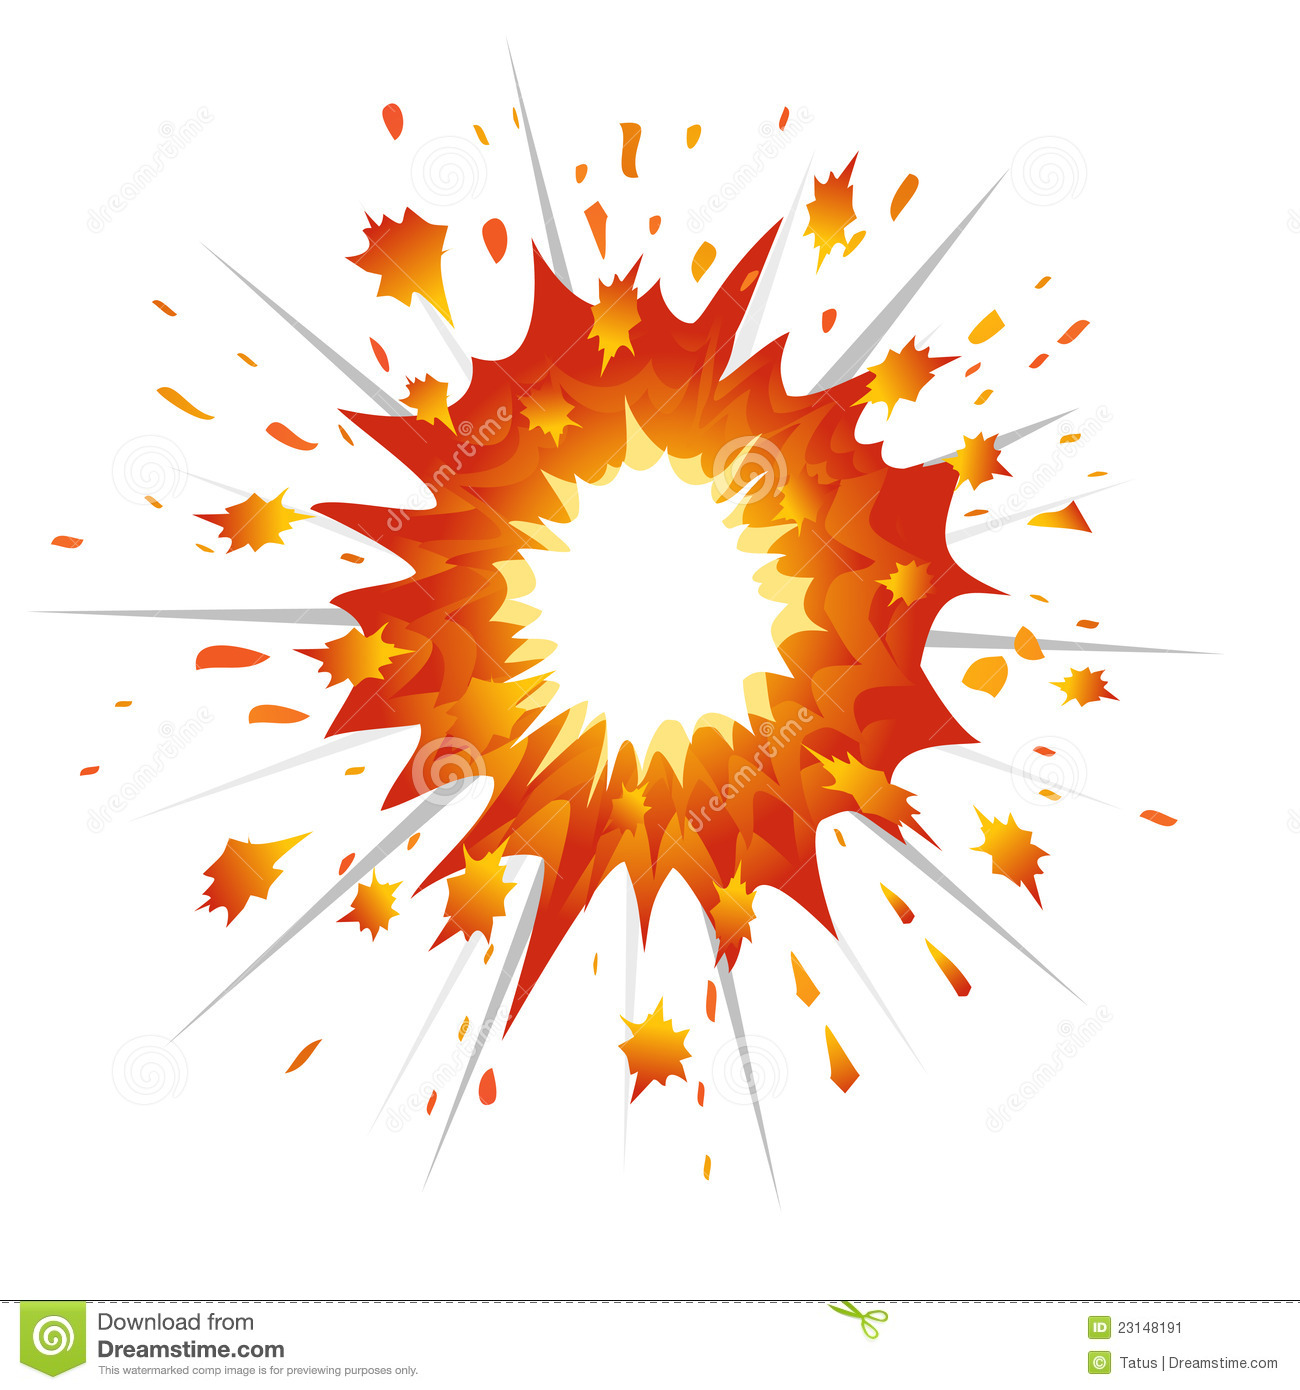 clipart explosion download - photo #40